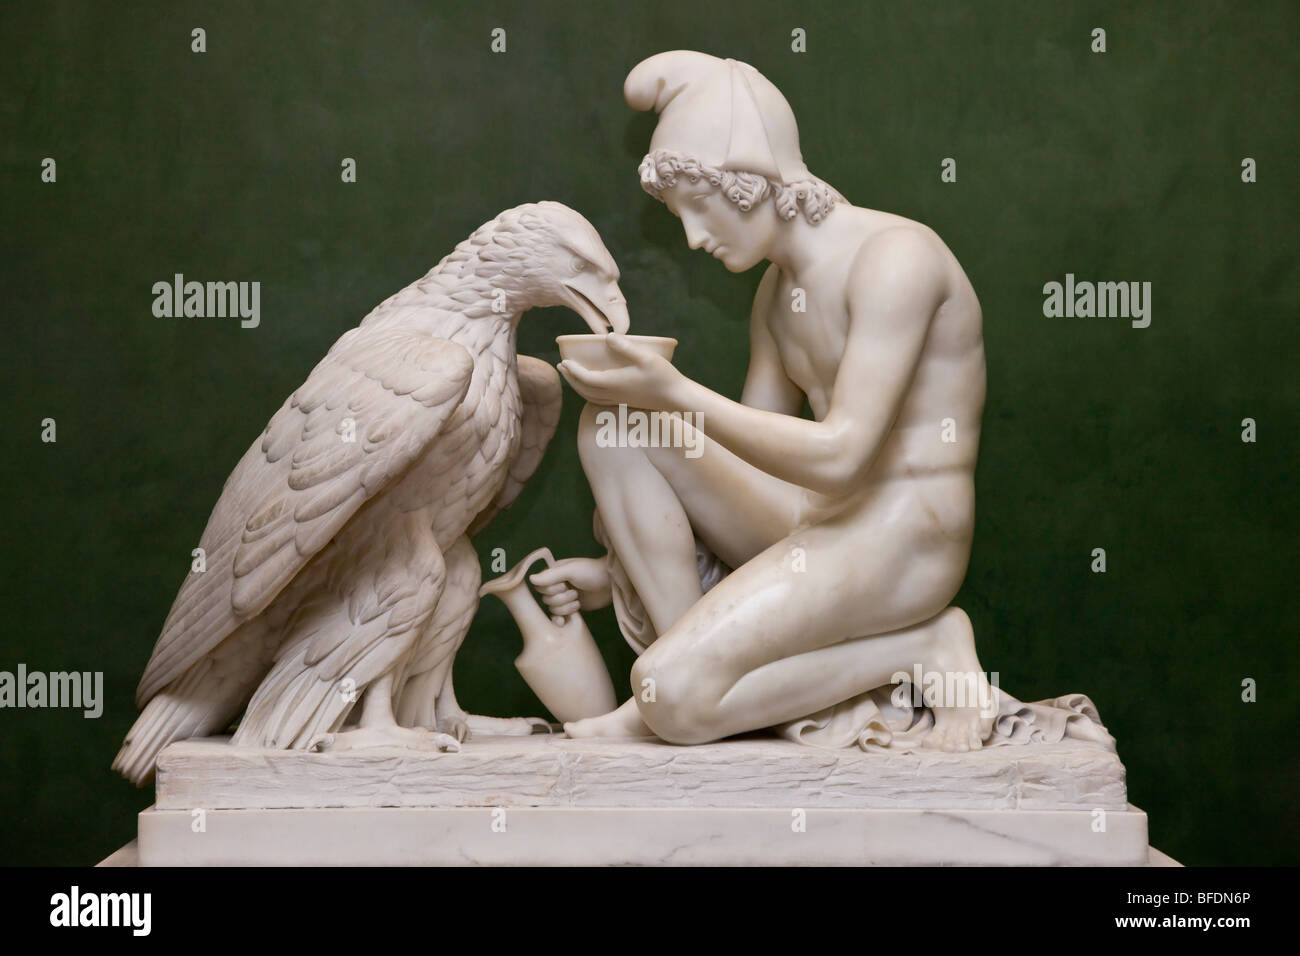 Sculpture of Ganymede with Jupiters Eagle at Thorvaldsens Museum in Copenhagen Denmark - Stock Image